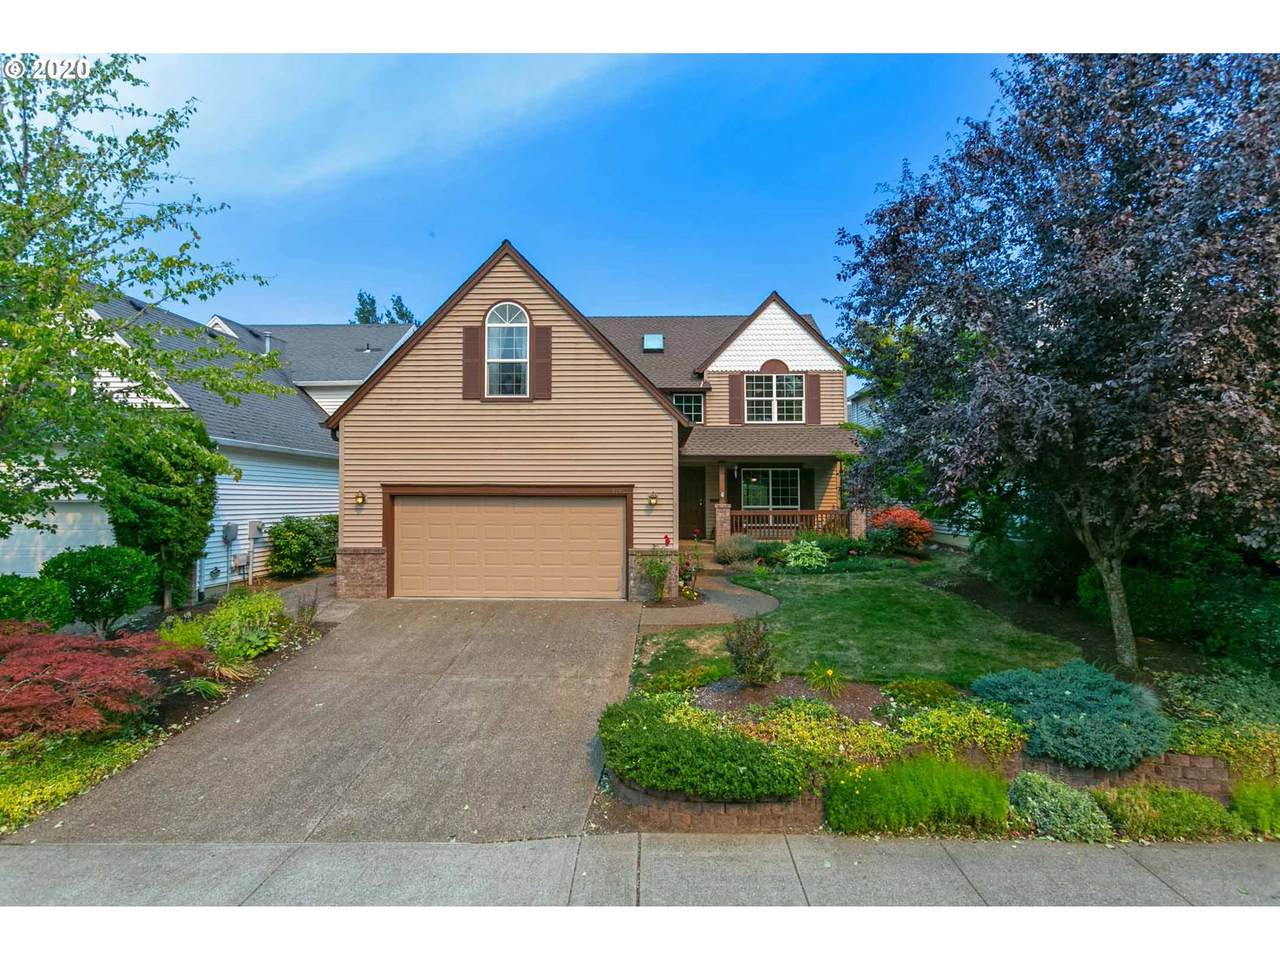 14923 Fawnlily Dr - Photo 1